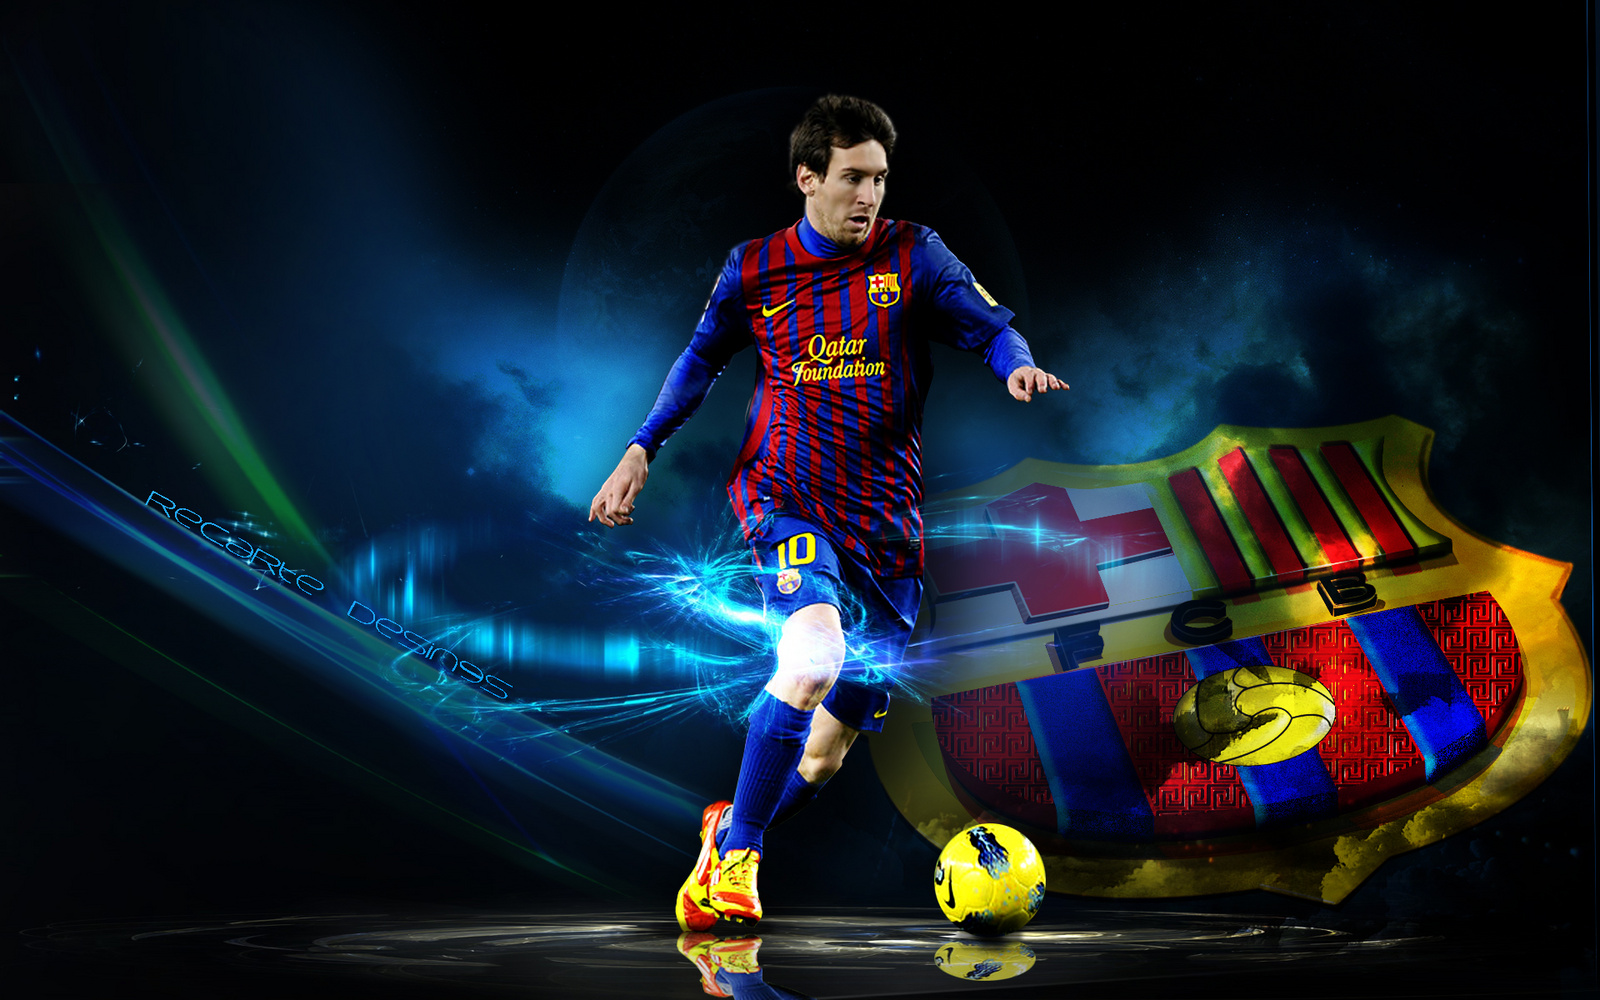 Lionel Messi Wallpapers High Quality  Download Free 1600x1000